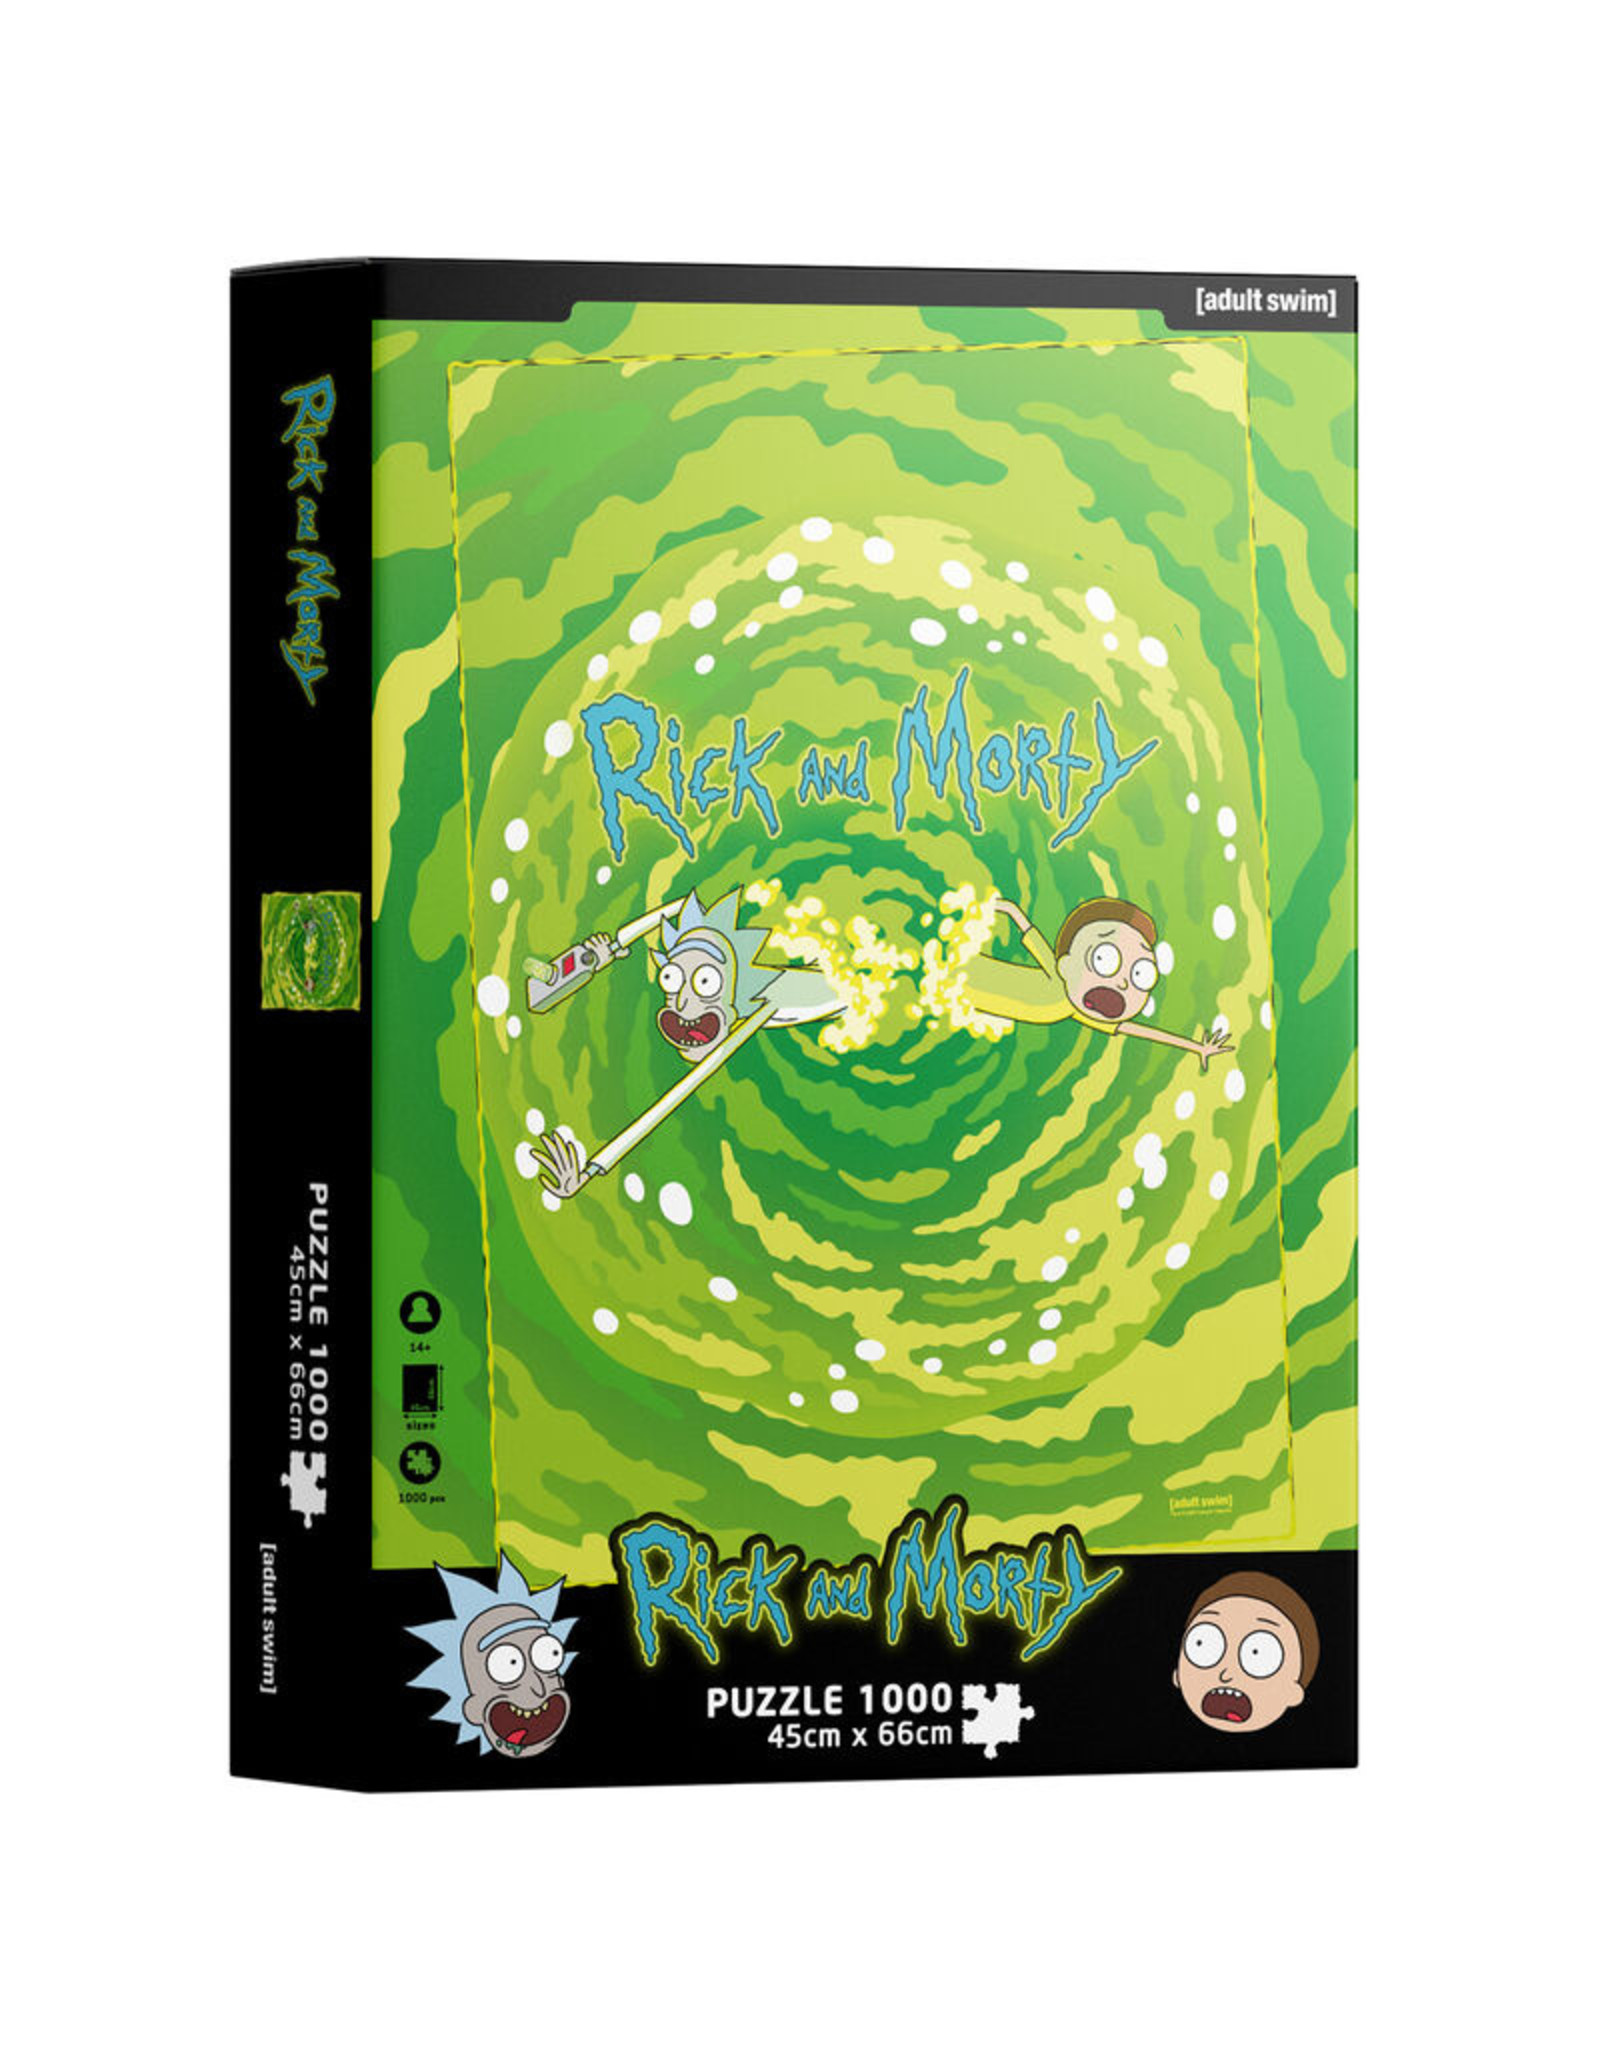 SD TOYS Rick and Morty Portal puzzel 1000 st.